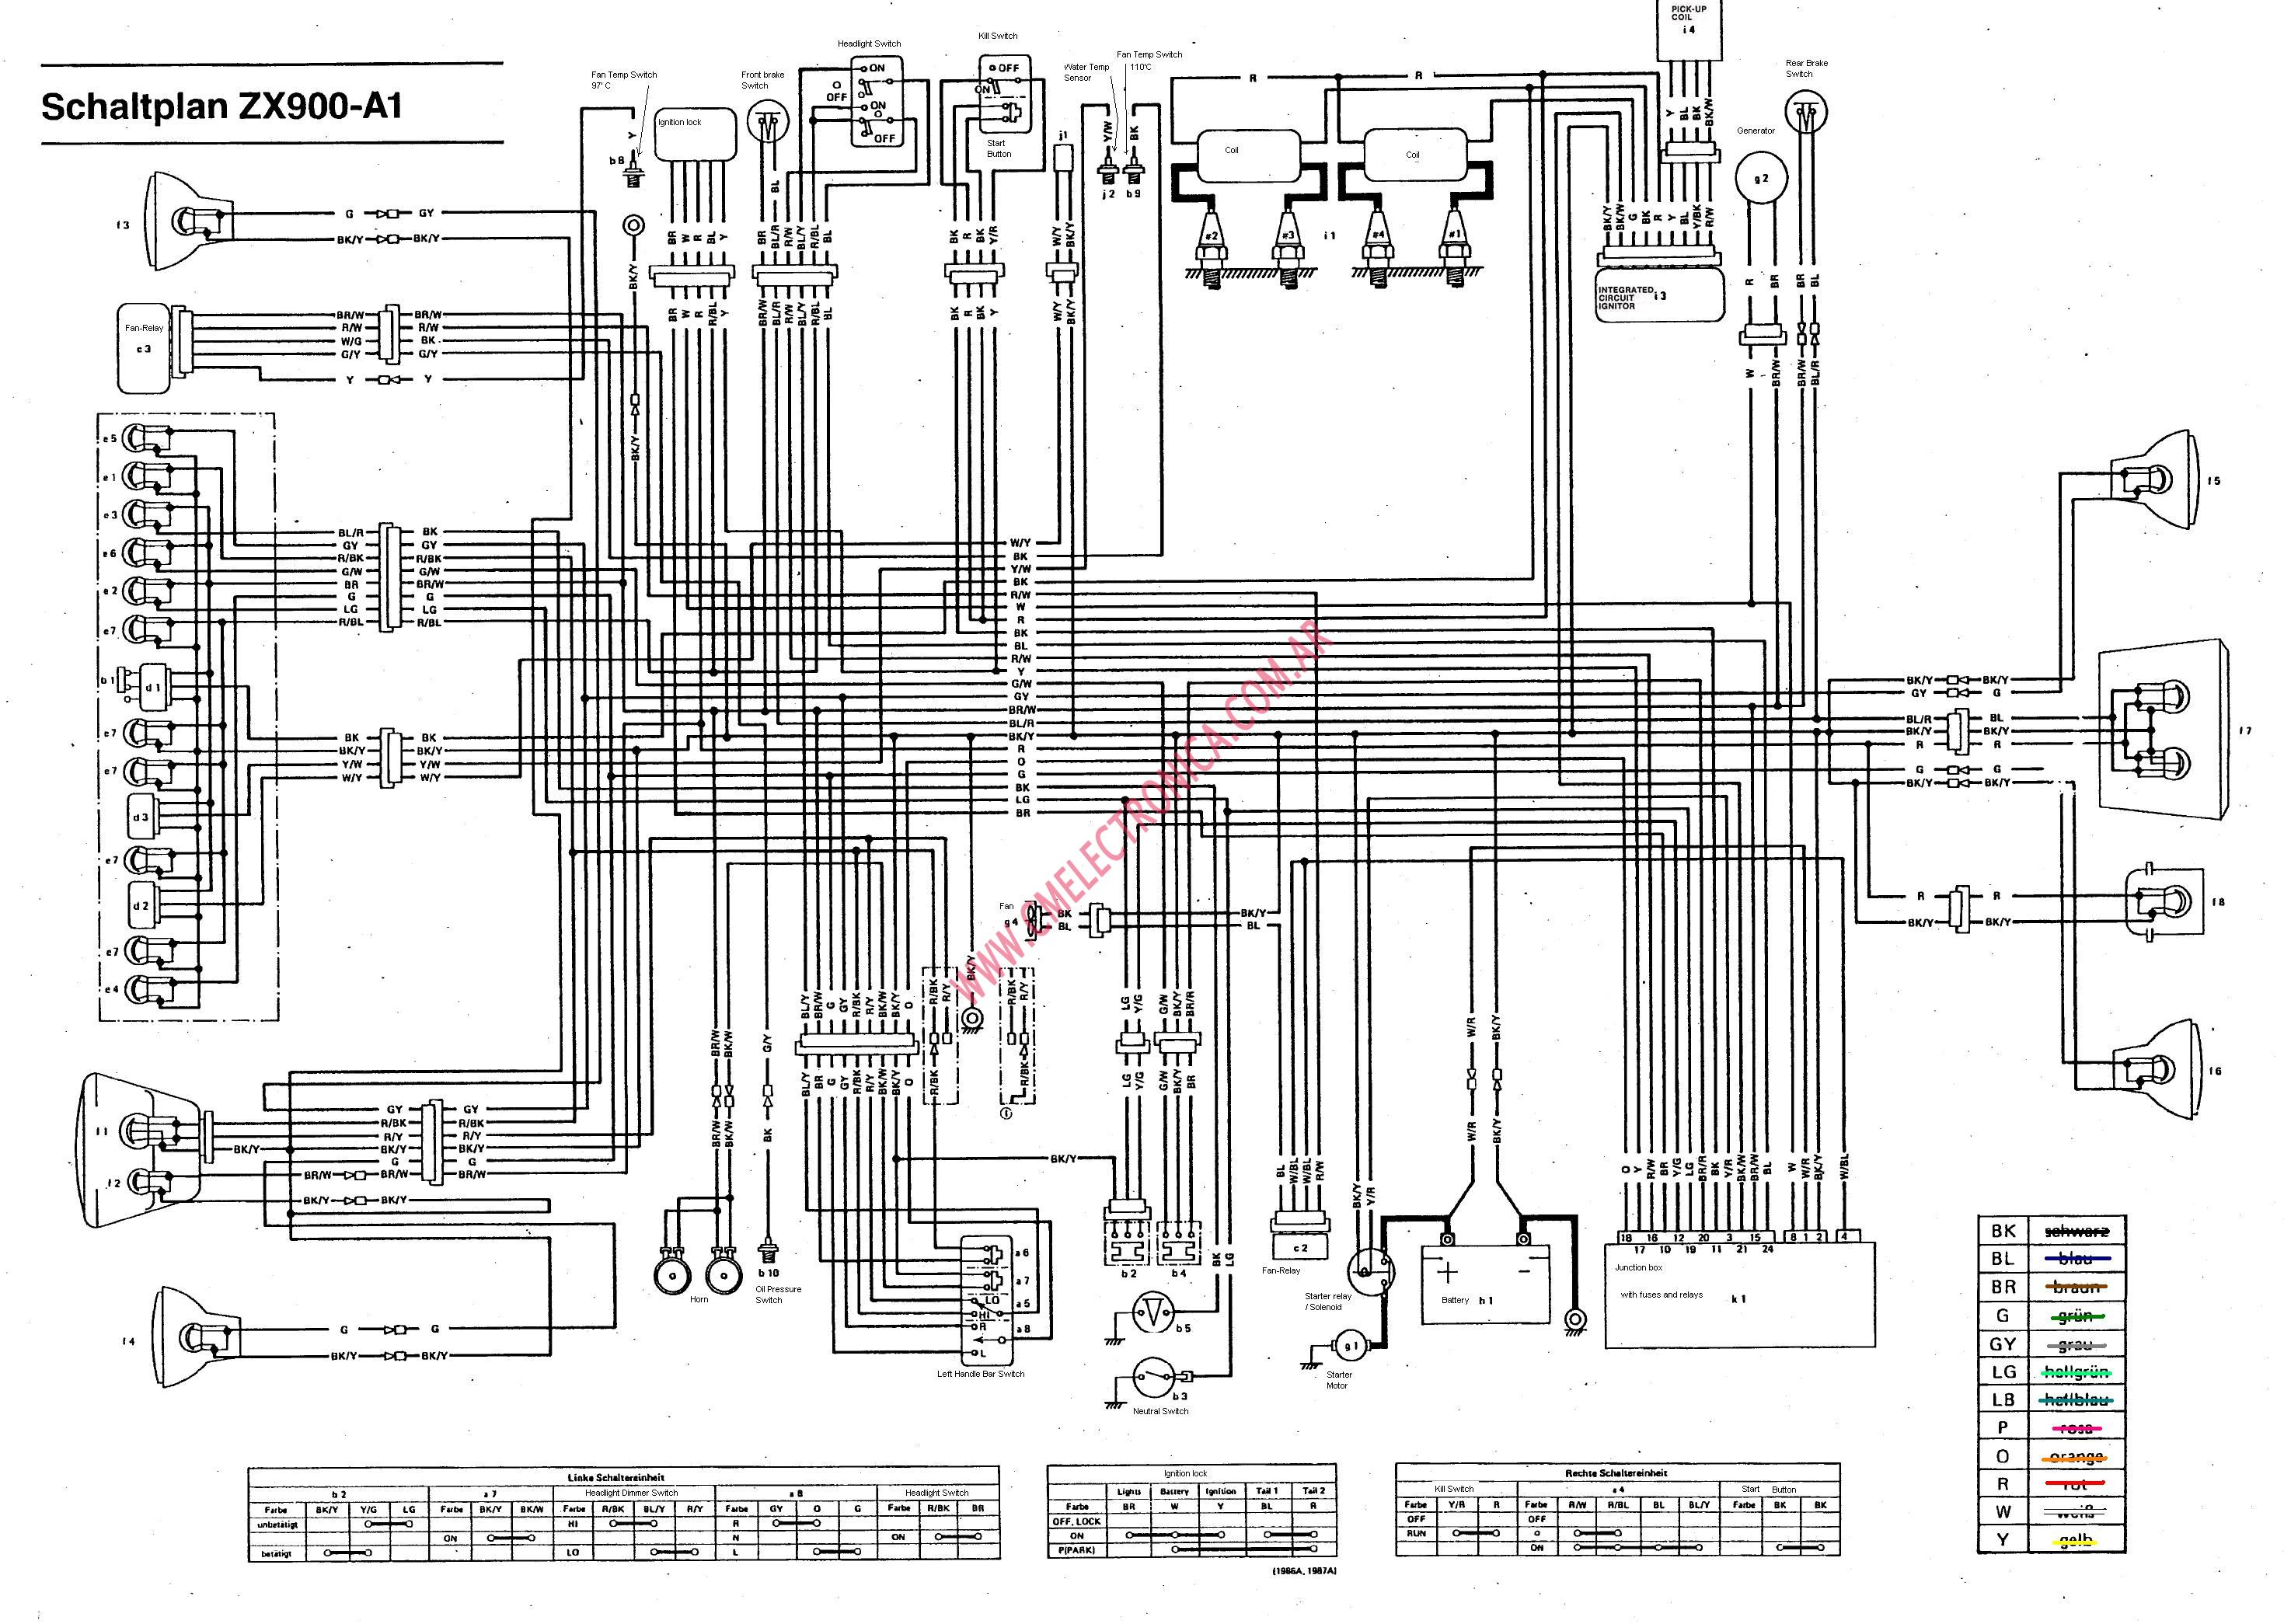 kawasaki gpz900_zx900 kawasaki gpz wiring diagram kawasaki wiring diagrams instruction Vulcan 1600 Classic at crackthecode.co